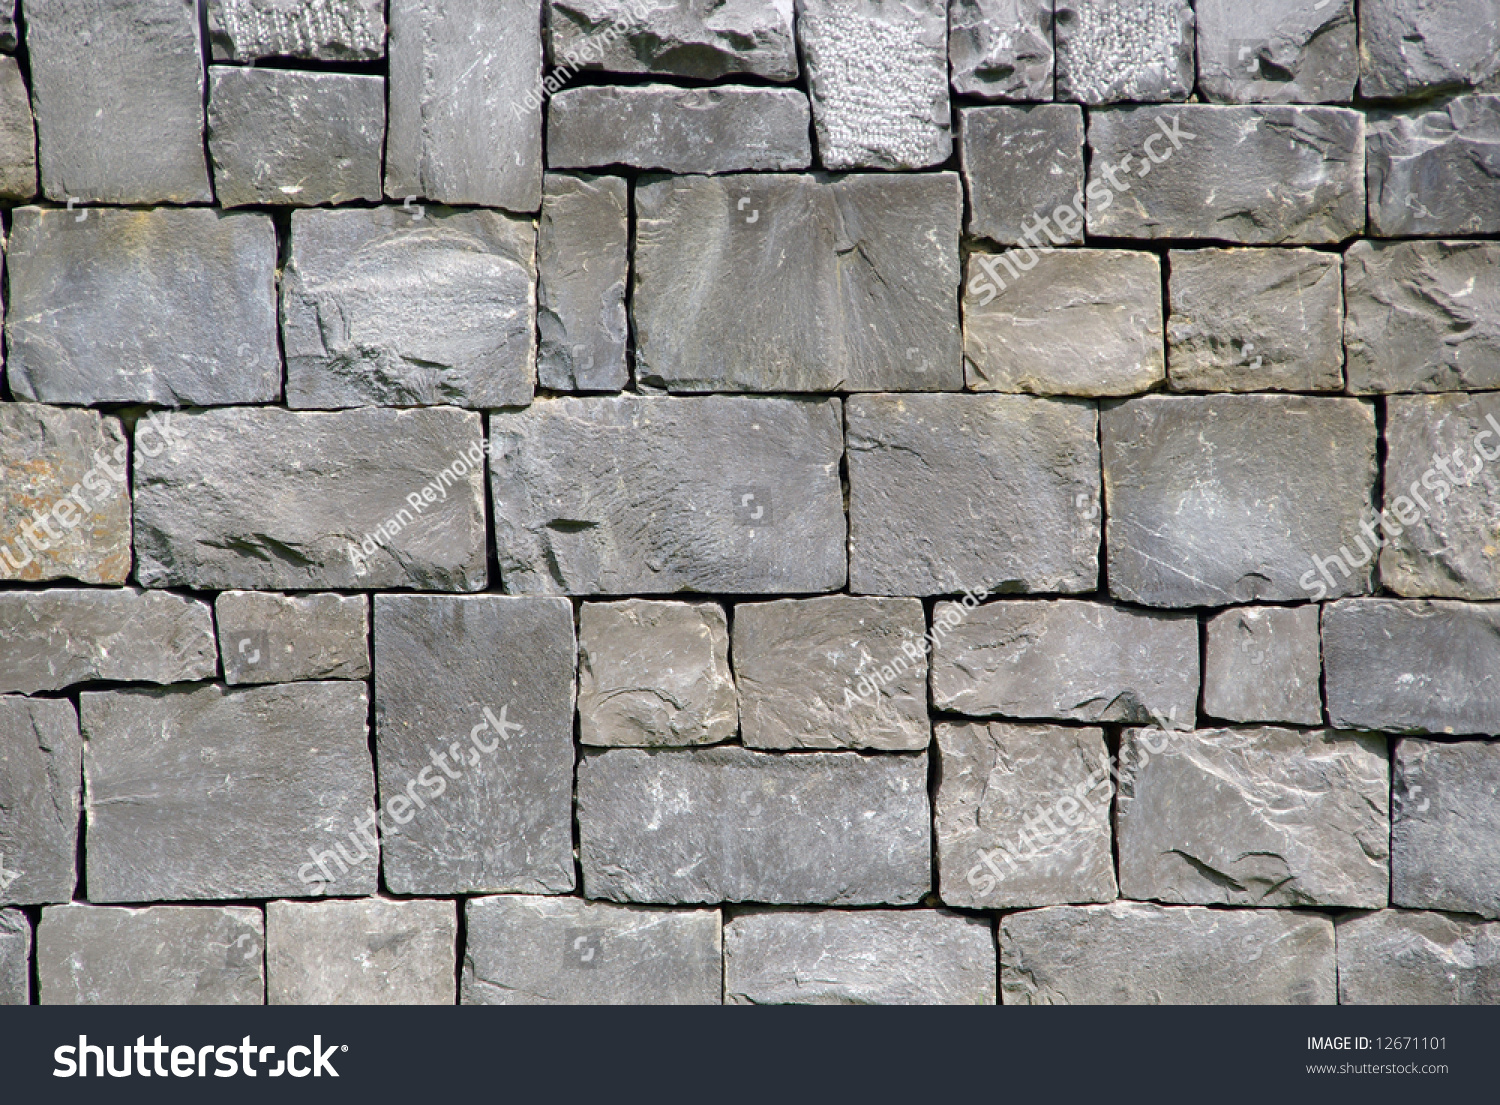 Granite Building Blocks : Natural stone dressed and cut into building blocks for use